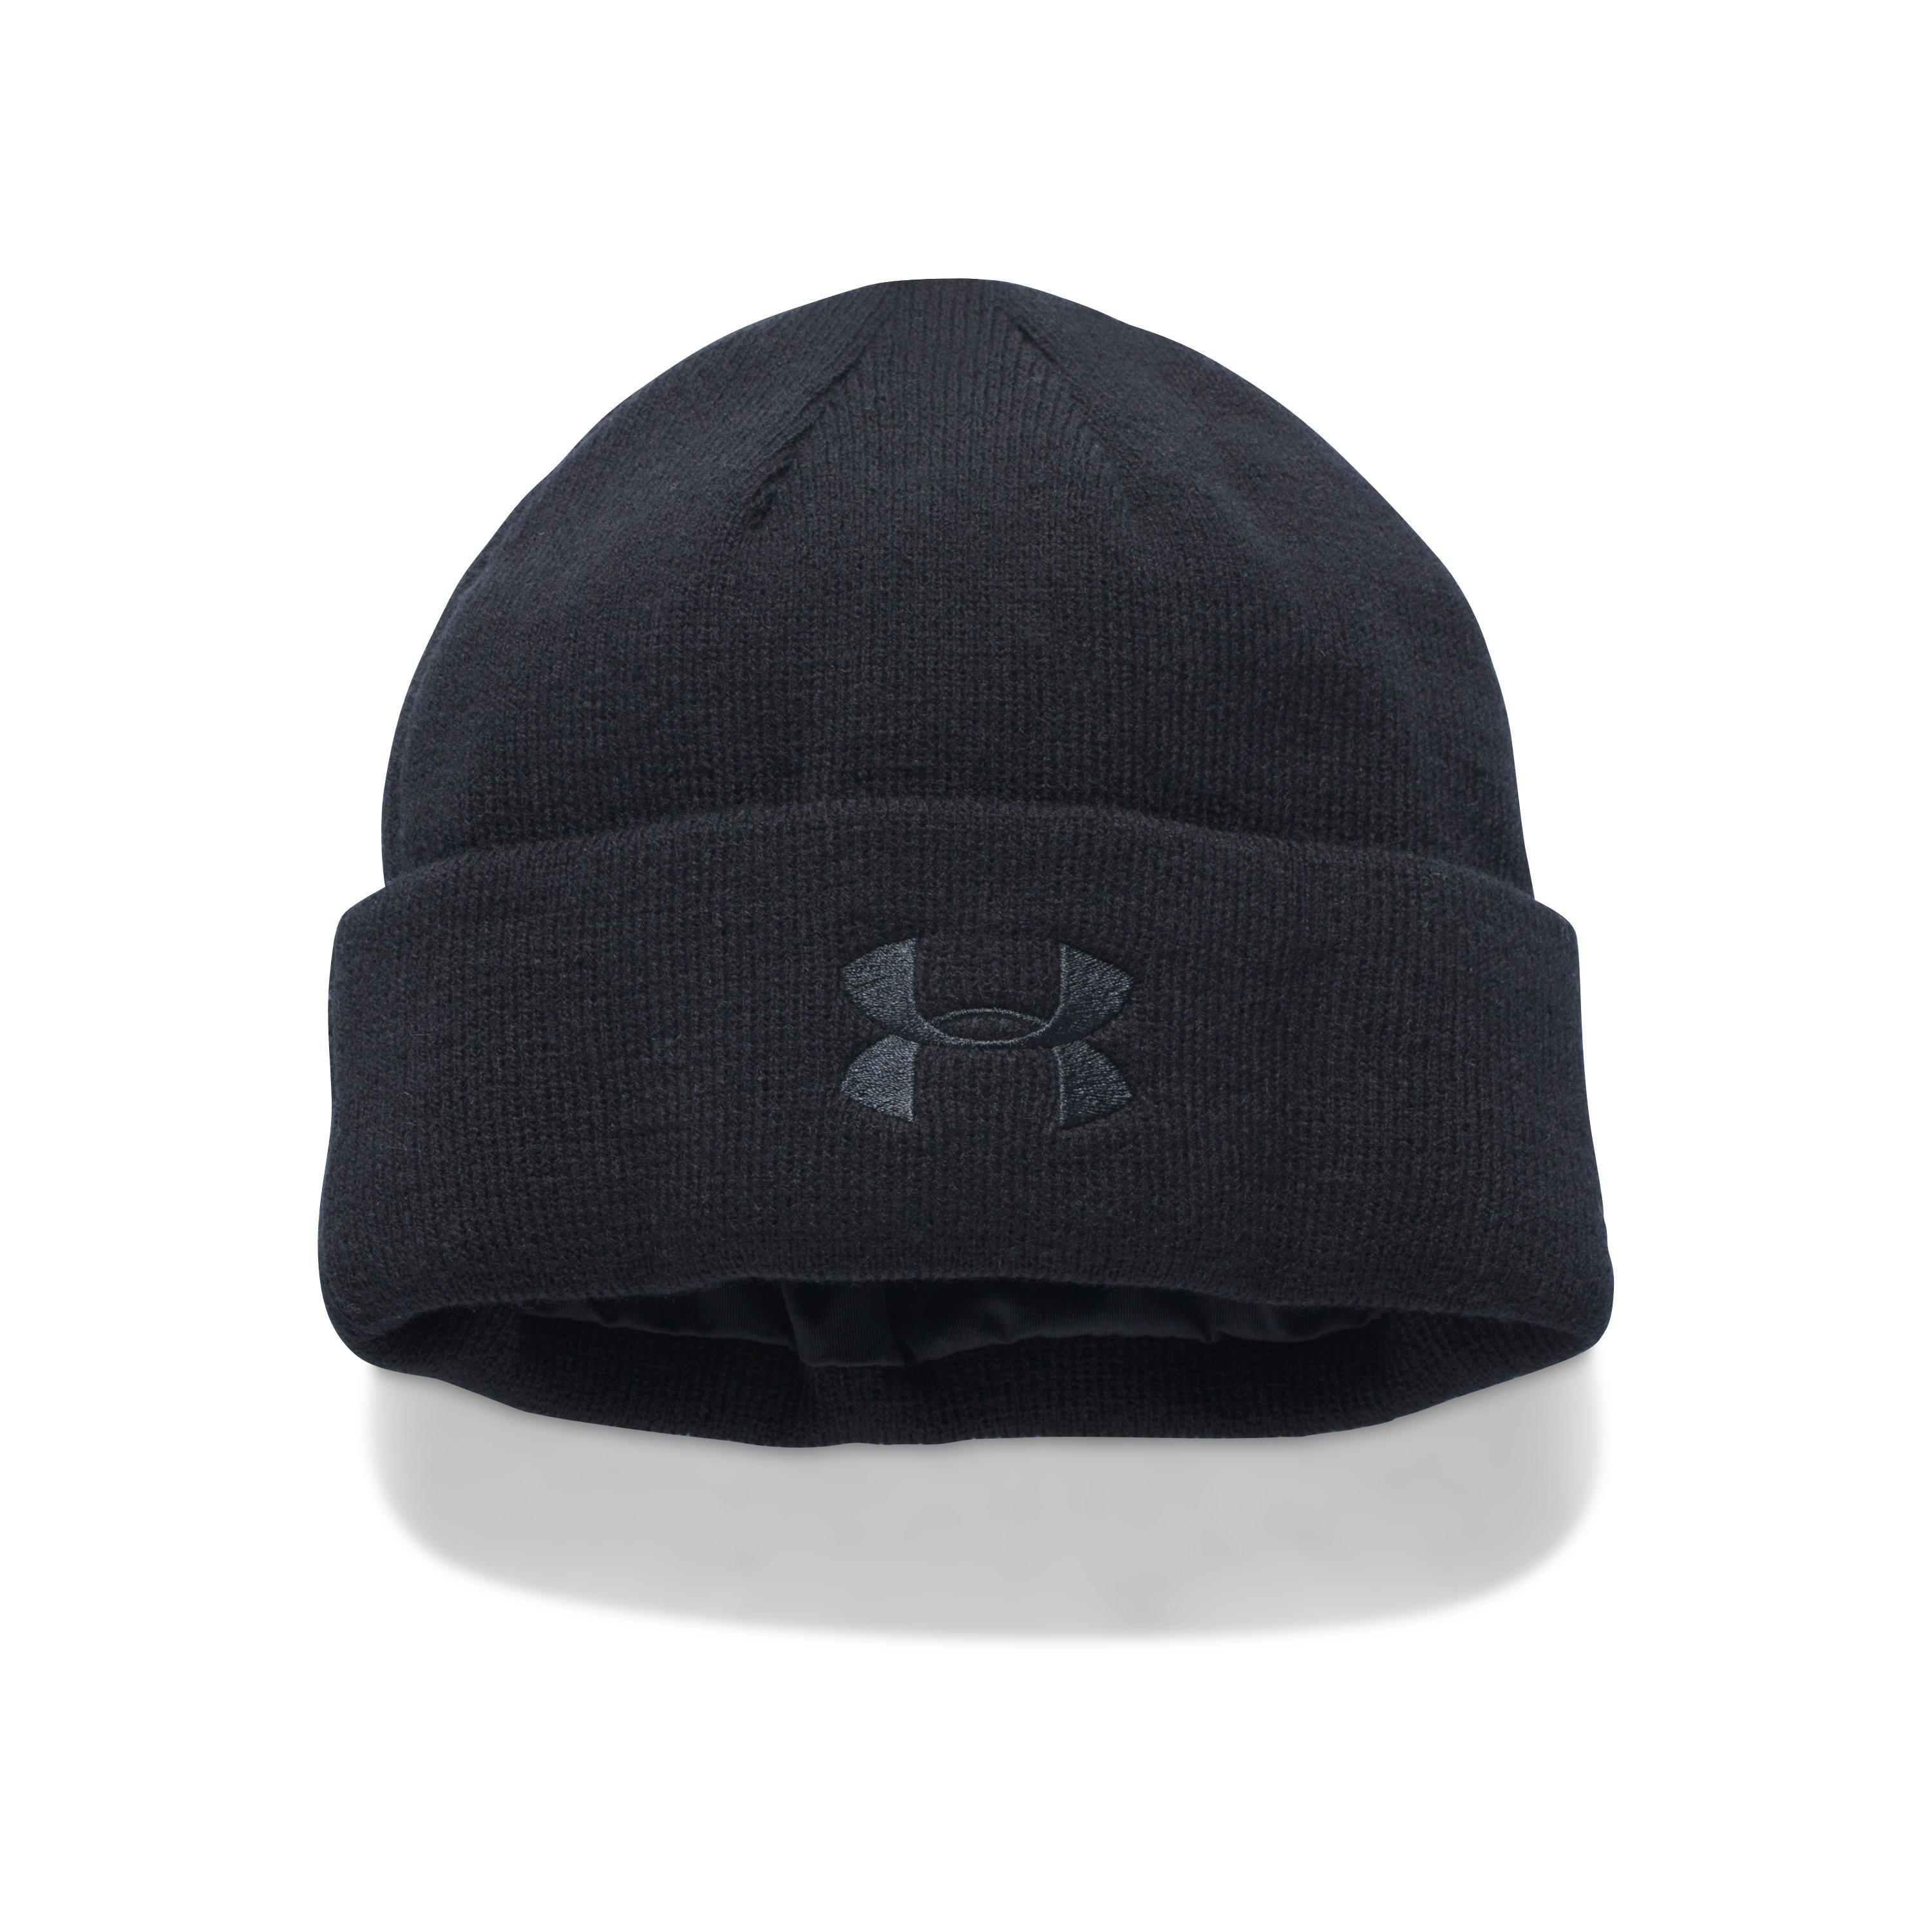 5aa64a8c03c24 ... get lyst under armour mens tactical stealth beanie in black for men  4292d 248ca